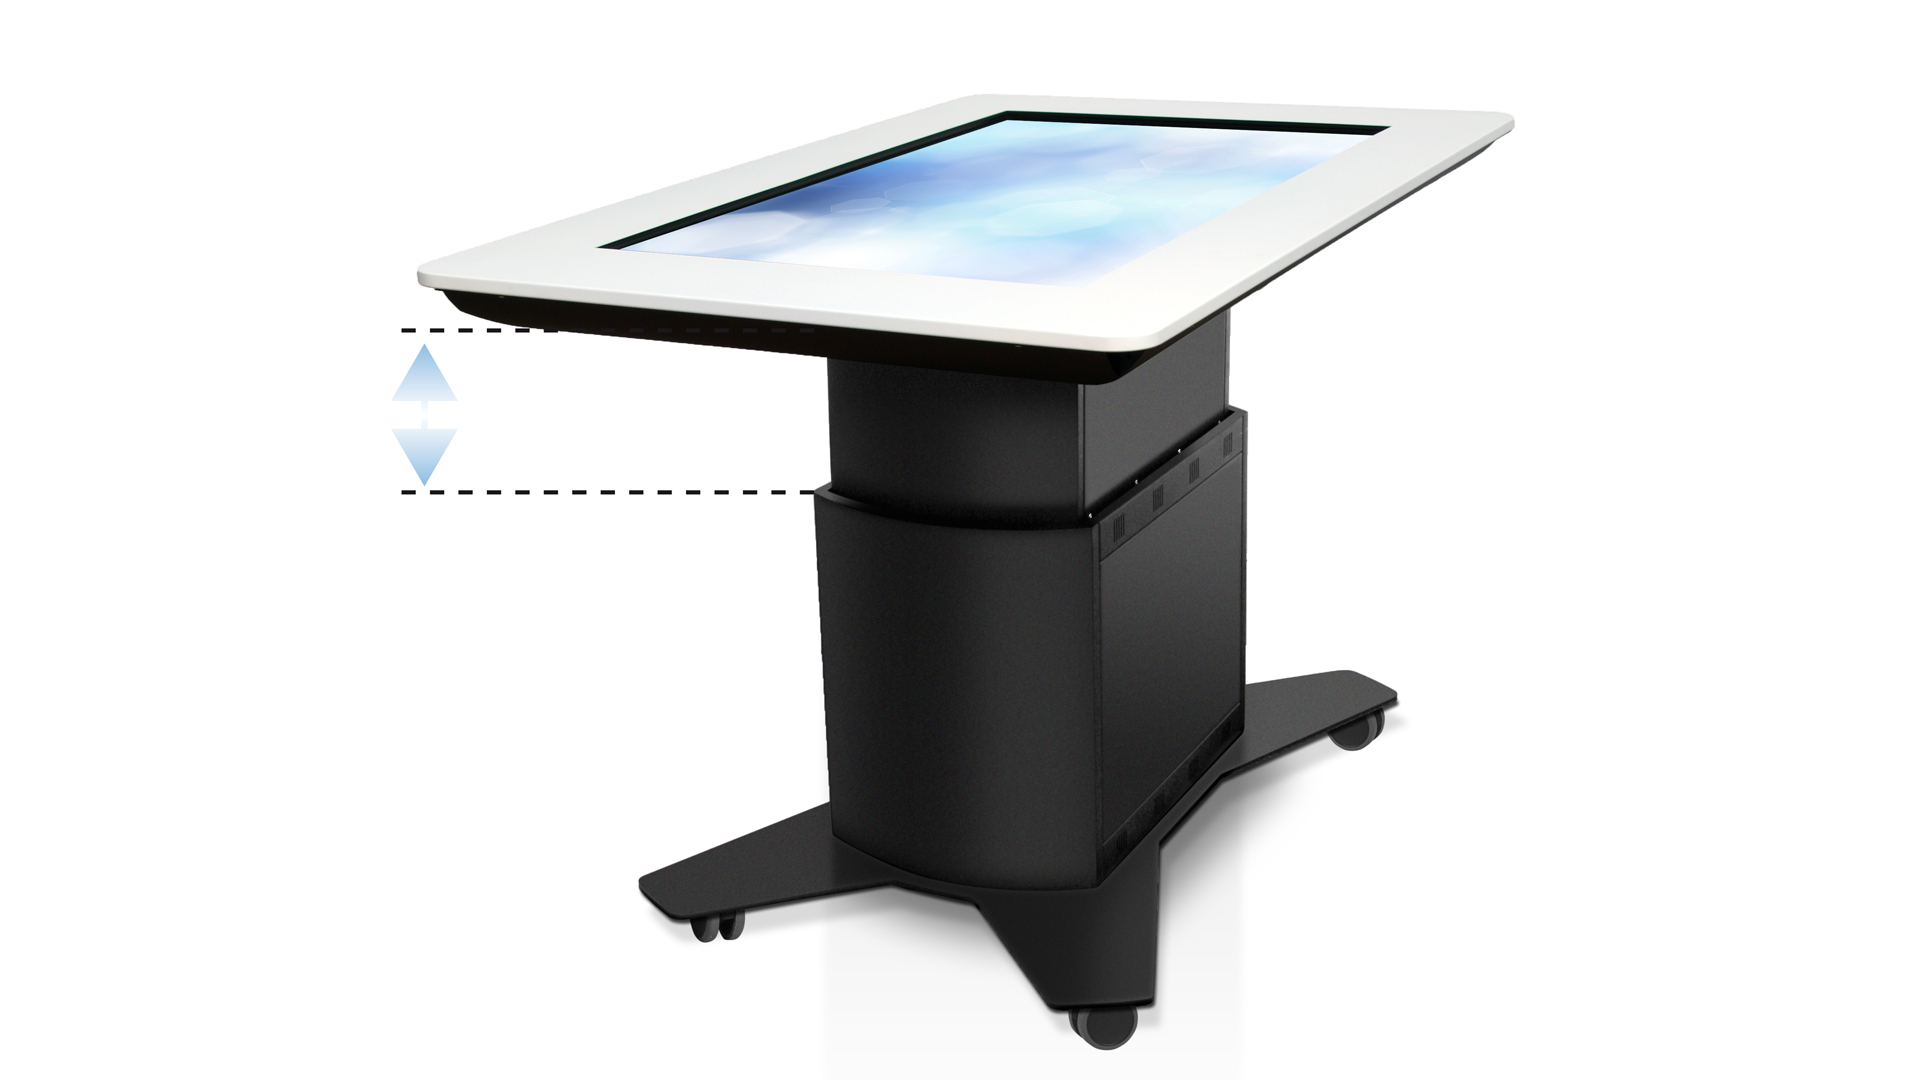 Touchtables-GiantLineSmart-PT-GT-955-IR-Smart-High Low-GT-Table-High-Low-Universal_45_55inch (2)